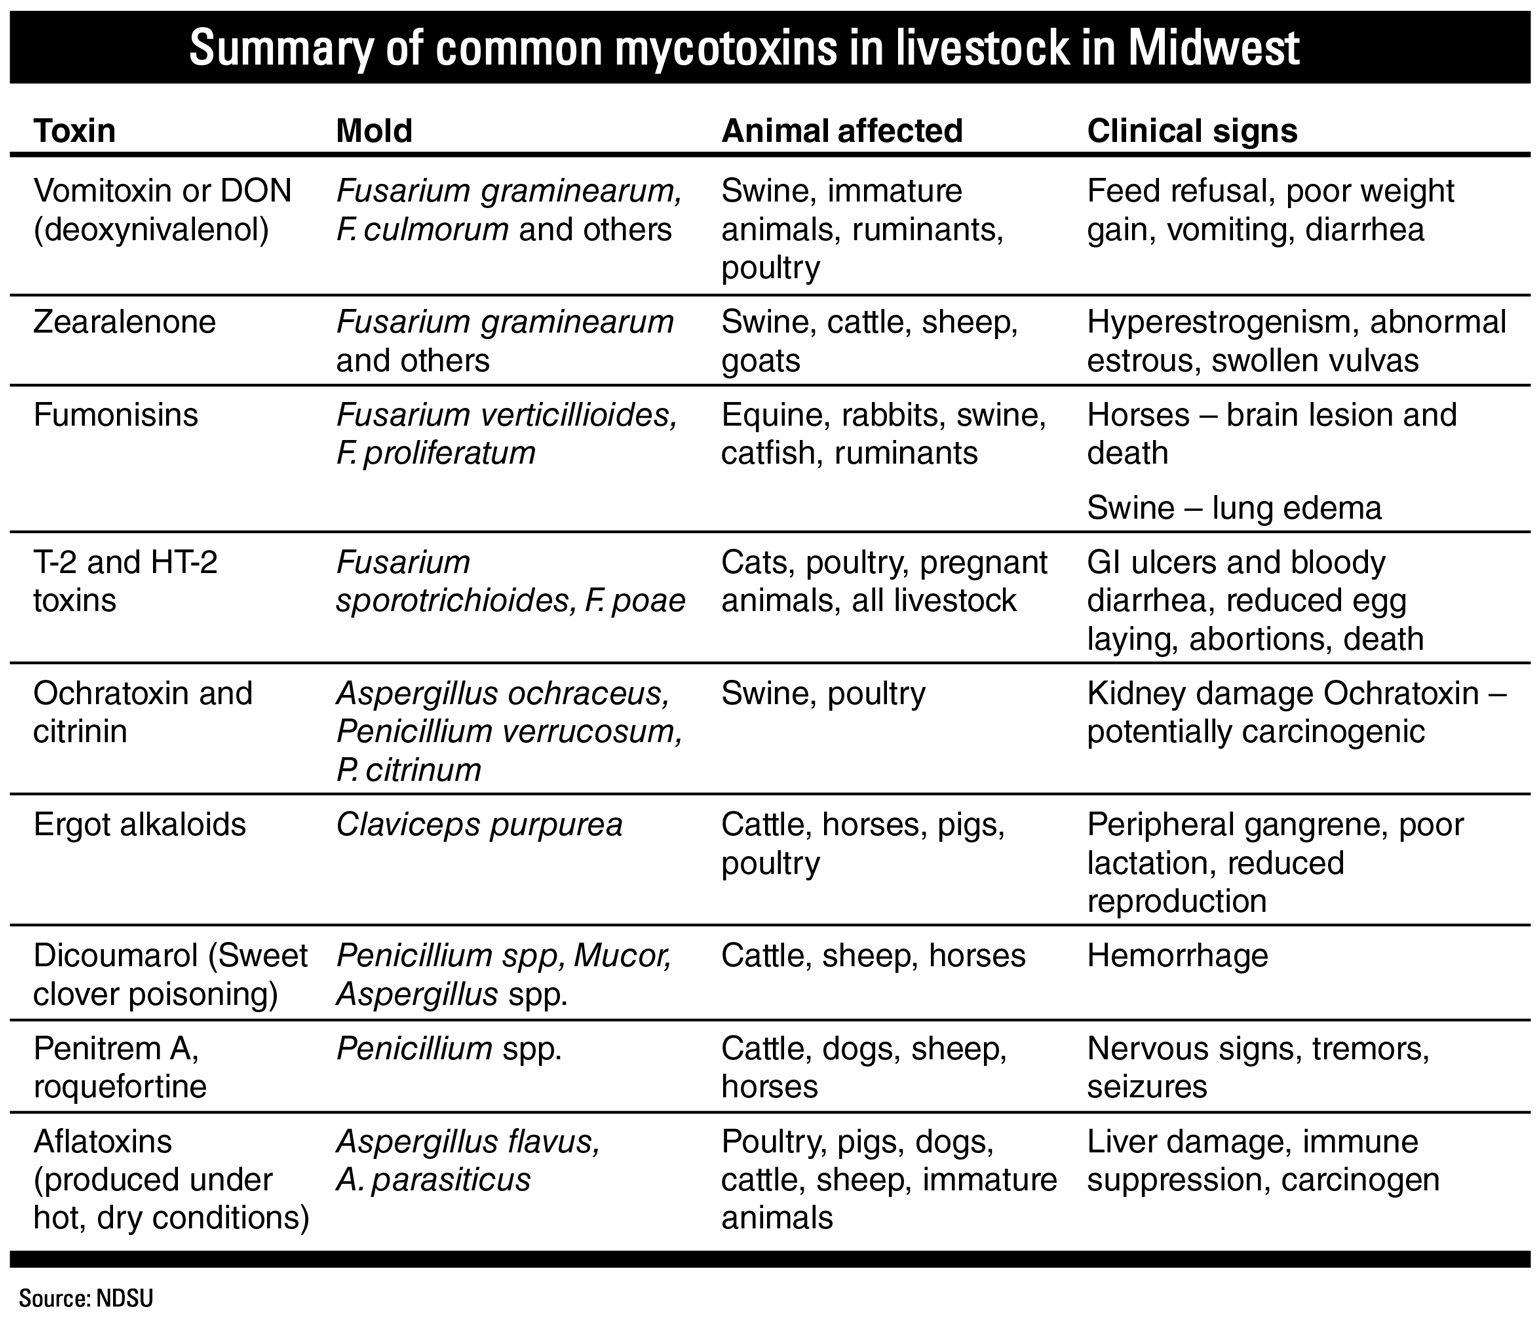 Summary of common mycotoxins in Midwest